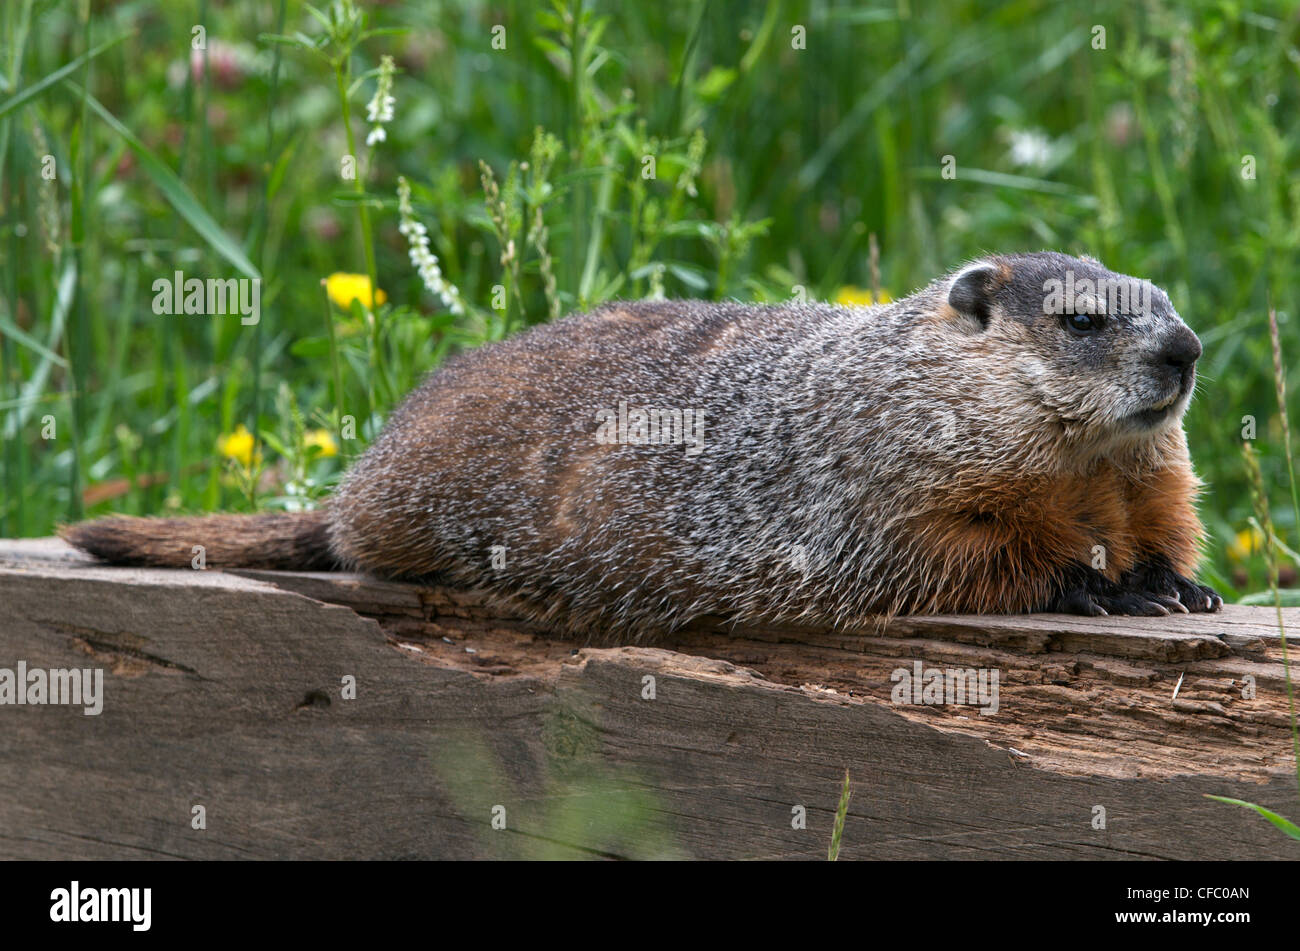 Groundhog or woodchuck (Marmota monax) resting on a wooden timber in summer grasses, South Gillies, Ontario, Canada. - Stock Image